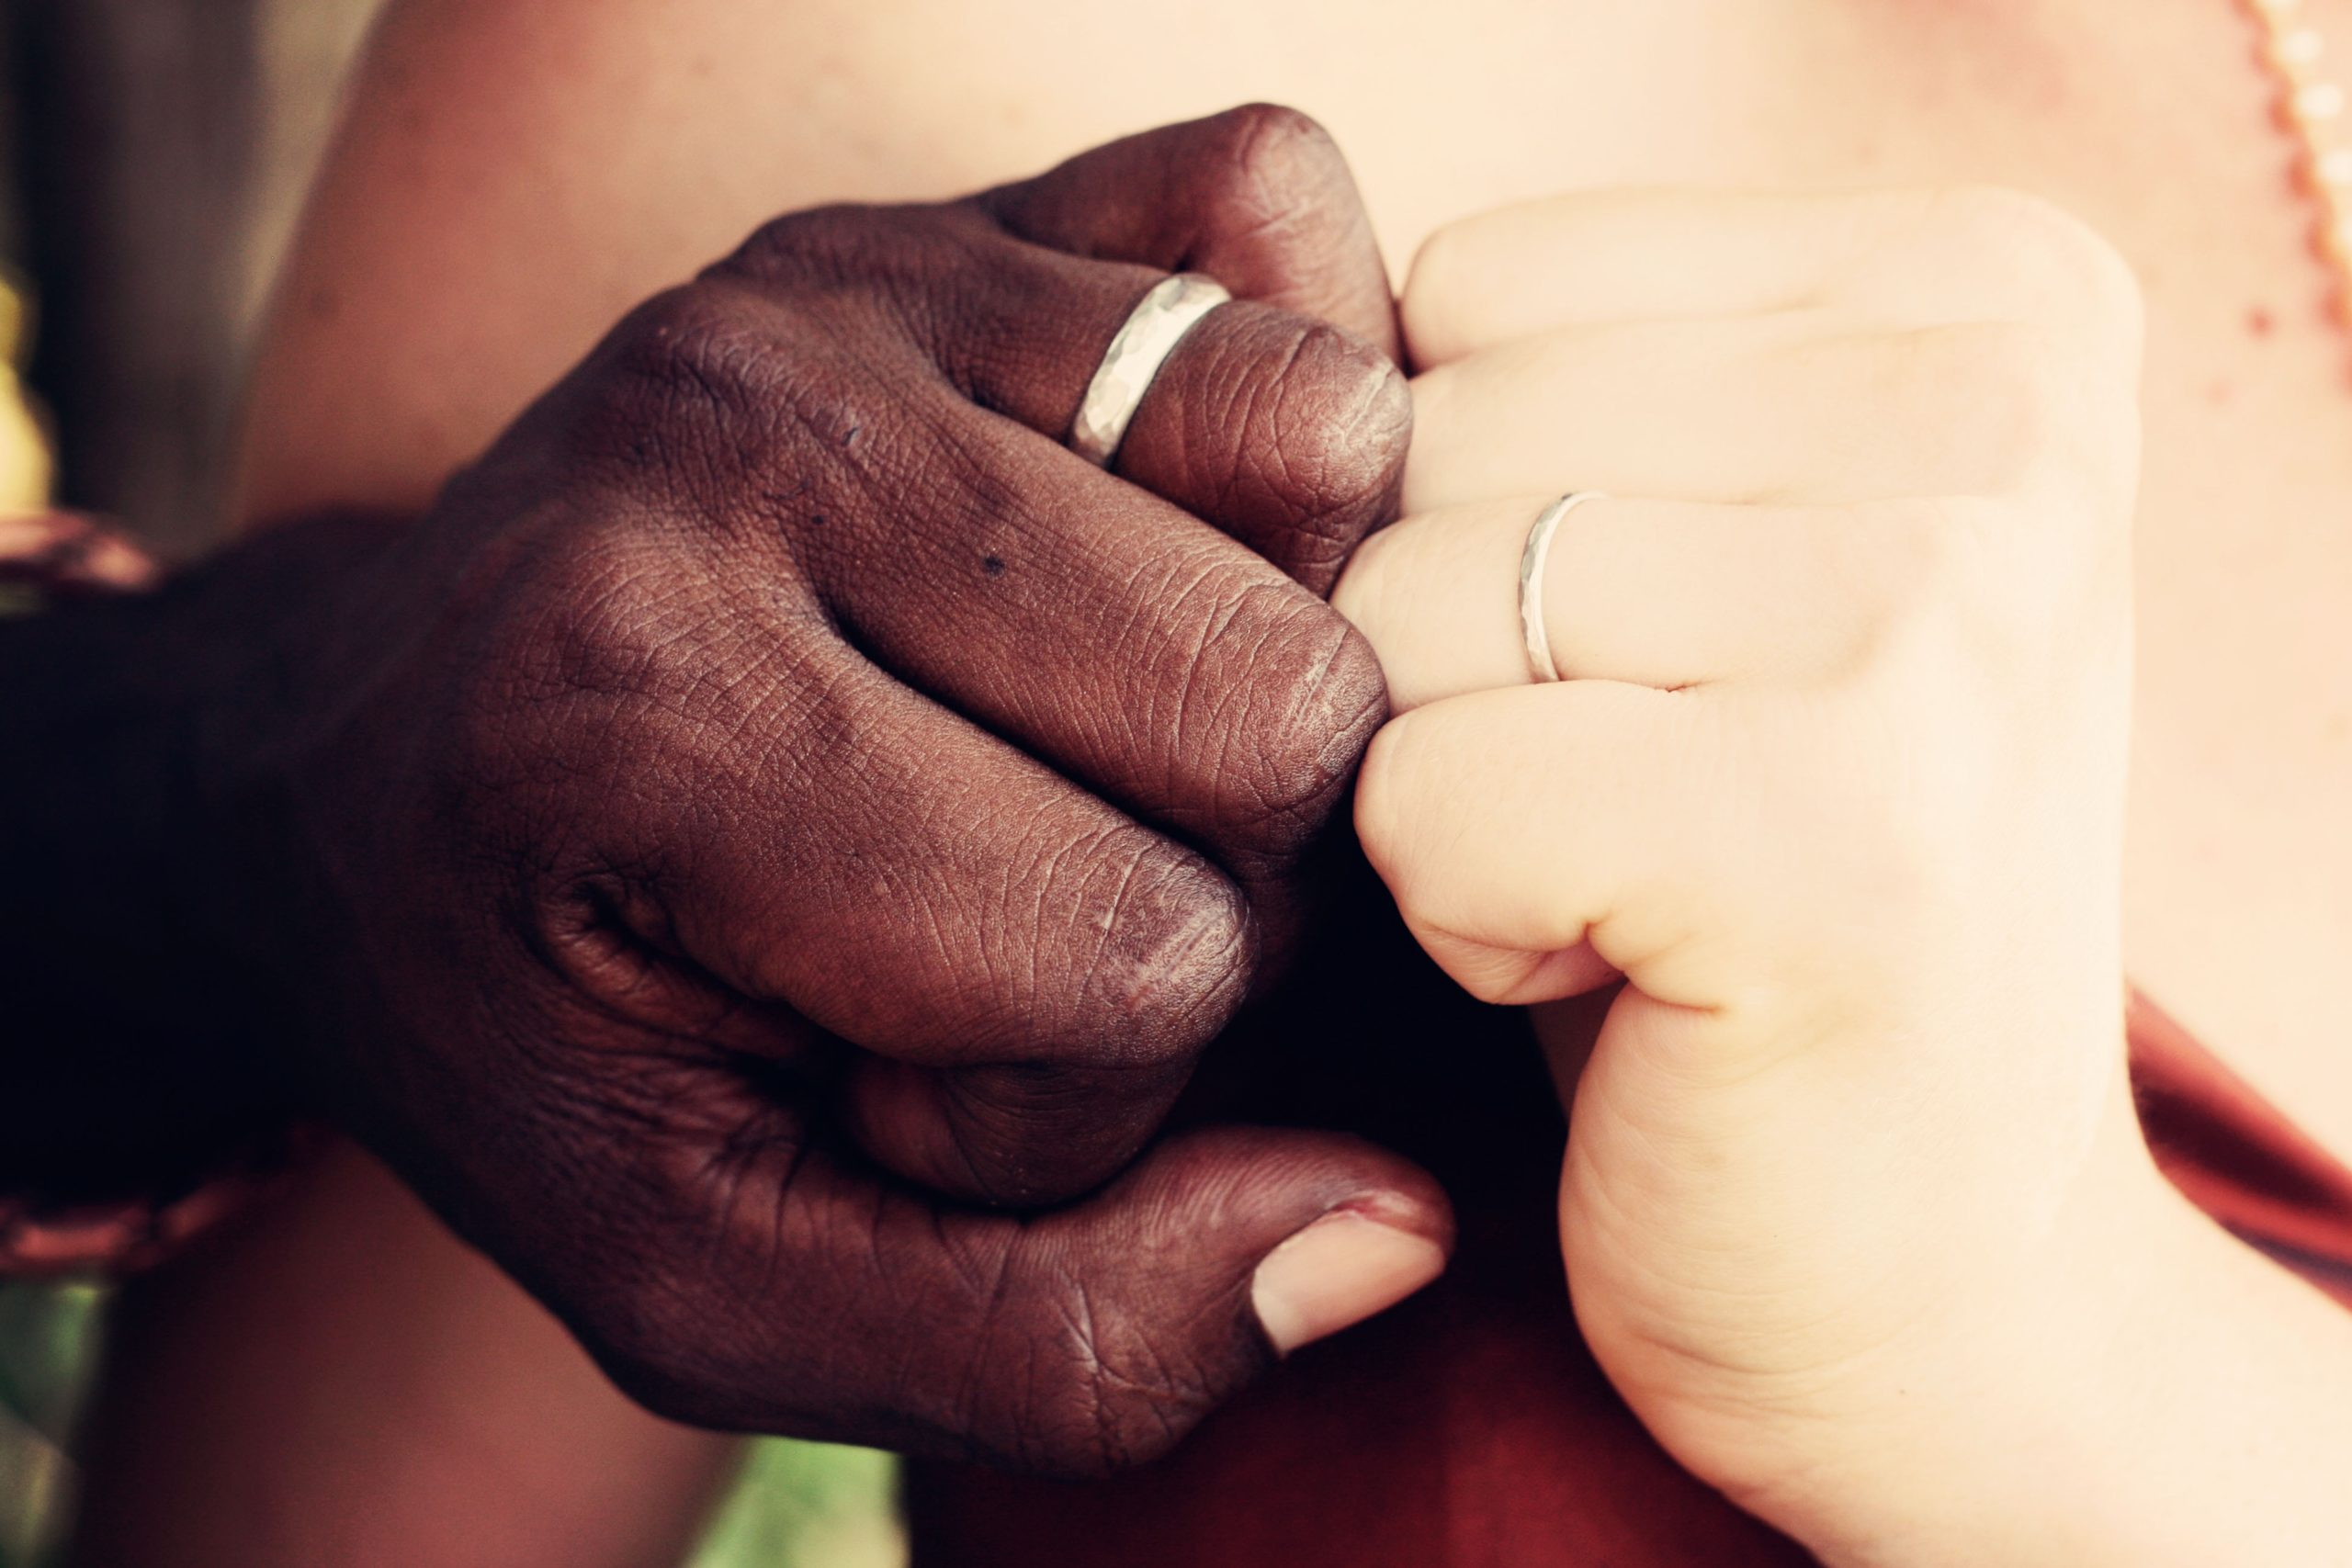 Interracial Marriage Problems You Should Know